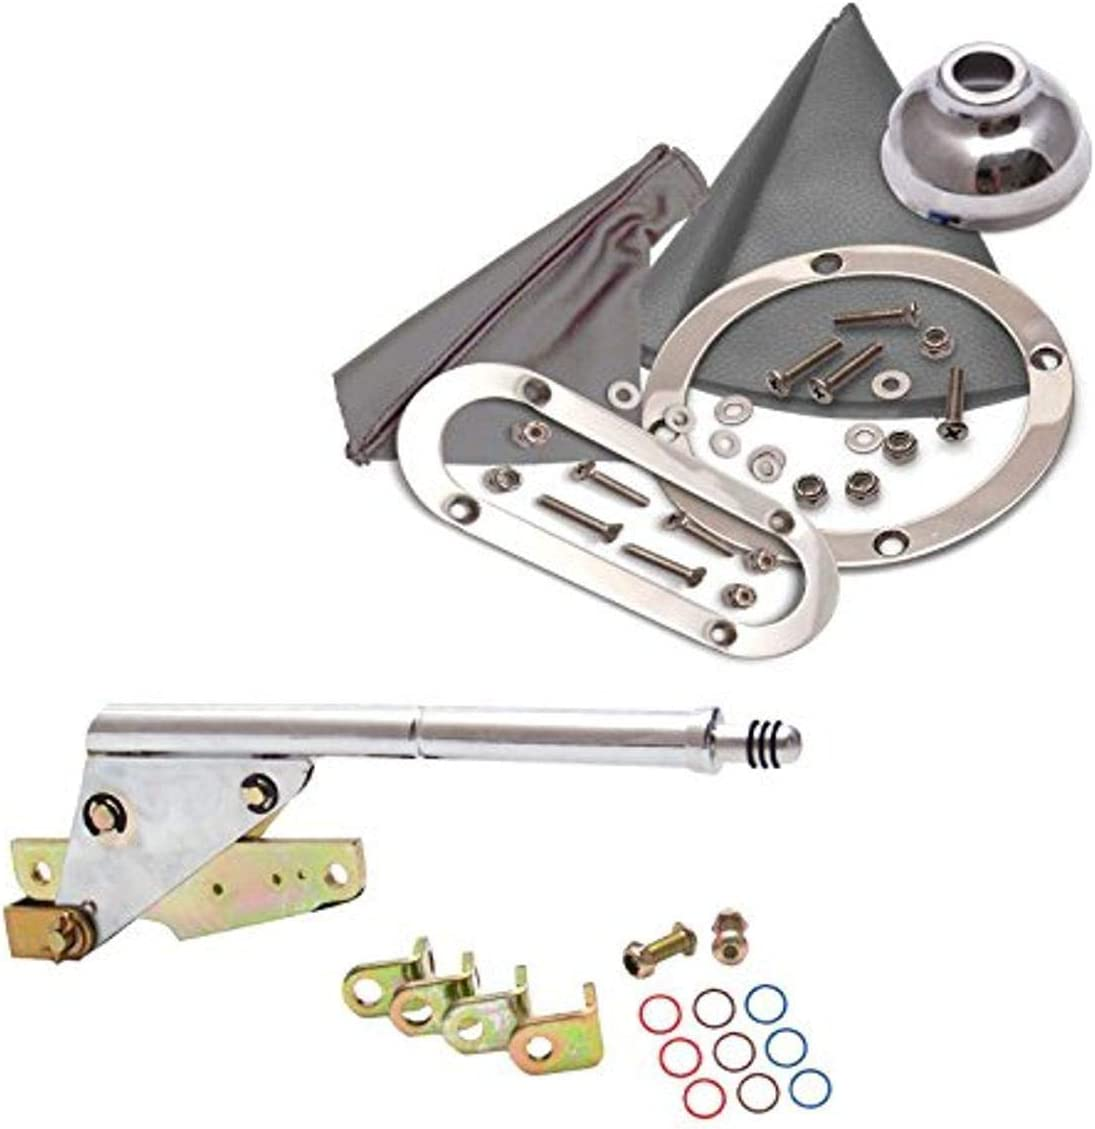 American Free shipping on posting Quality inspection reviews Shifter 396981 Kit 518 Brake Clamp E 8